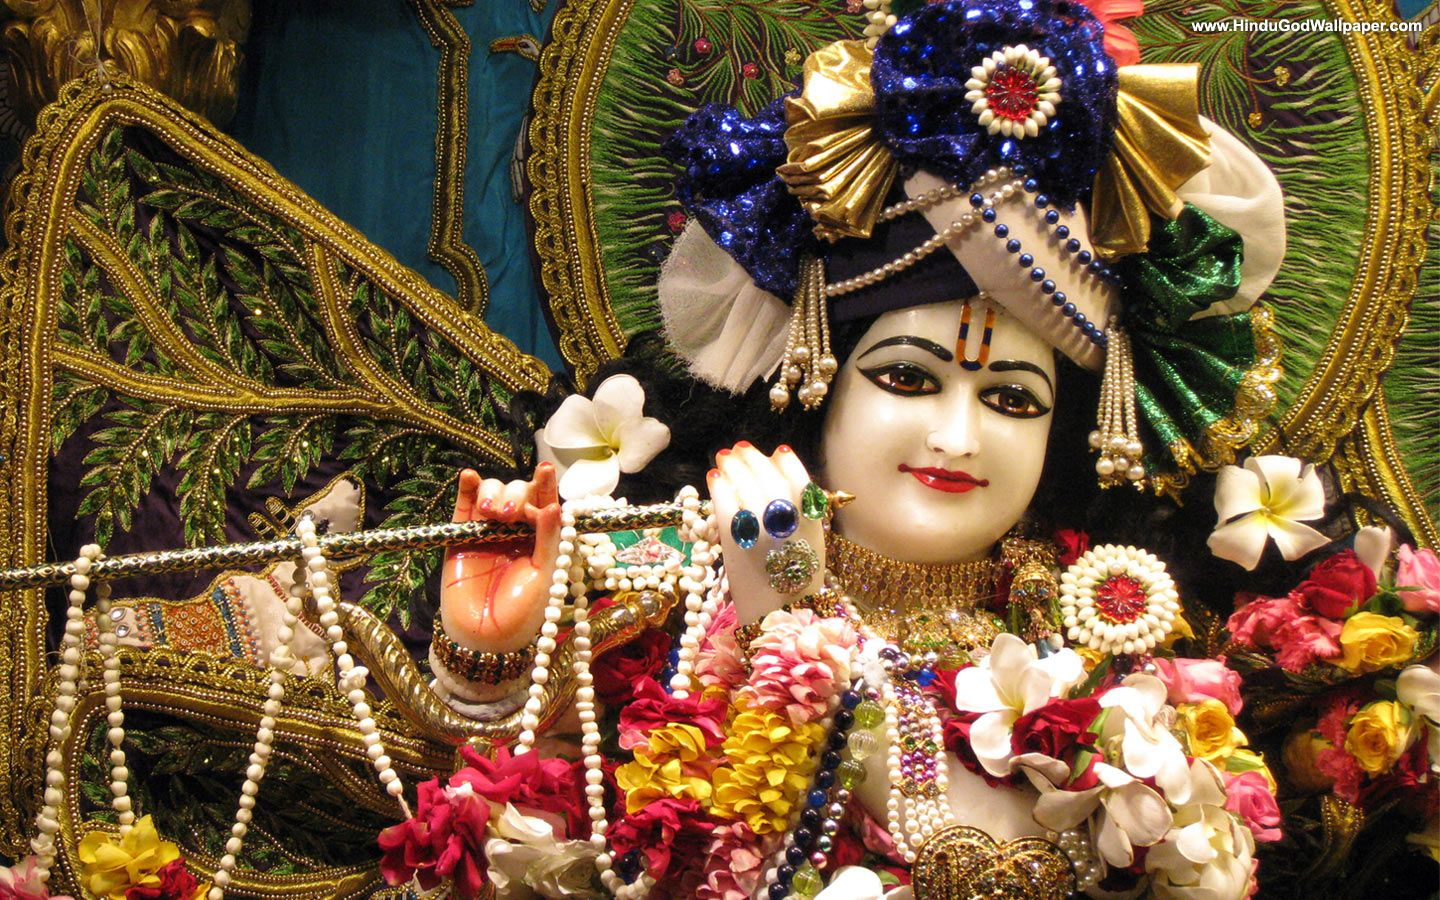 Wallpaper download krishna - Lord Krishna Iskcon Wallpapers And Images Download